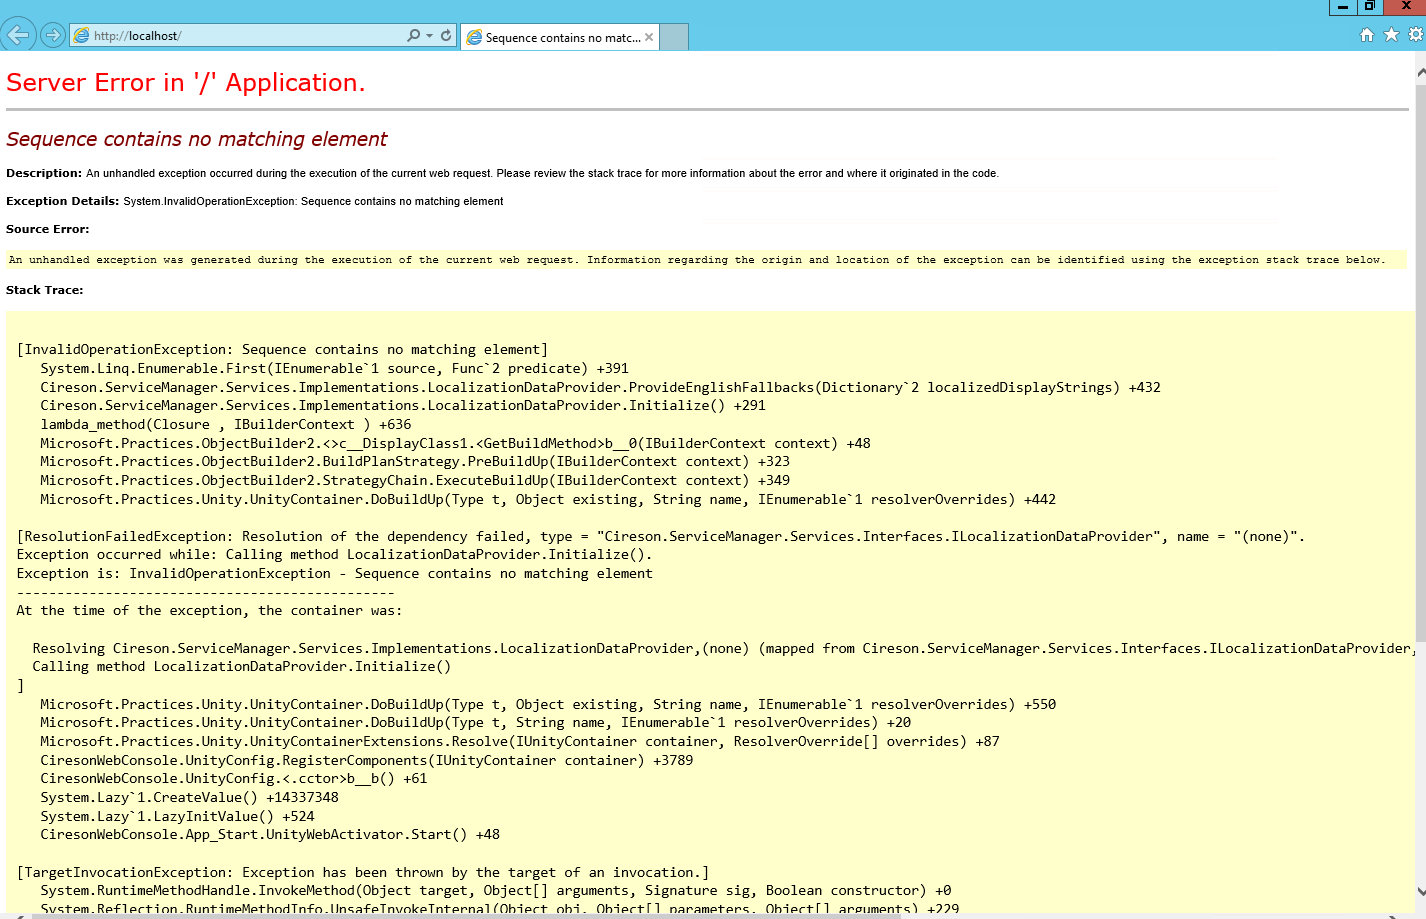 Support FAQ - IIS Error after new install: Server Error OR Group is